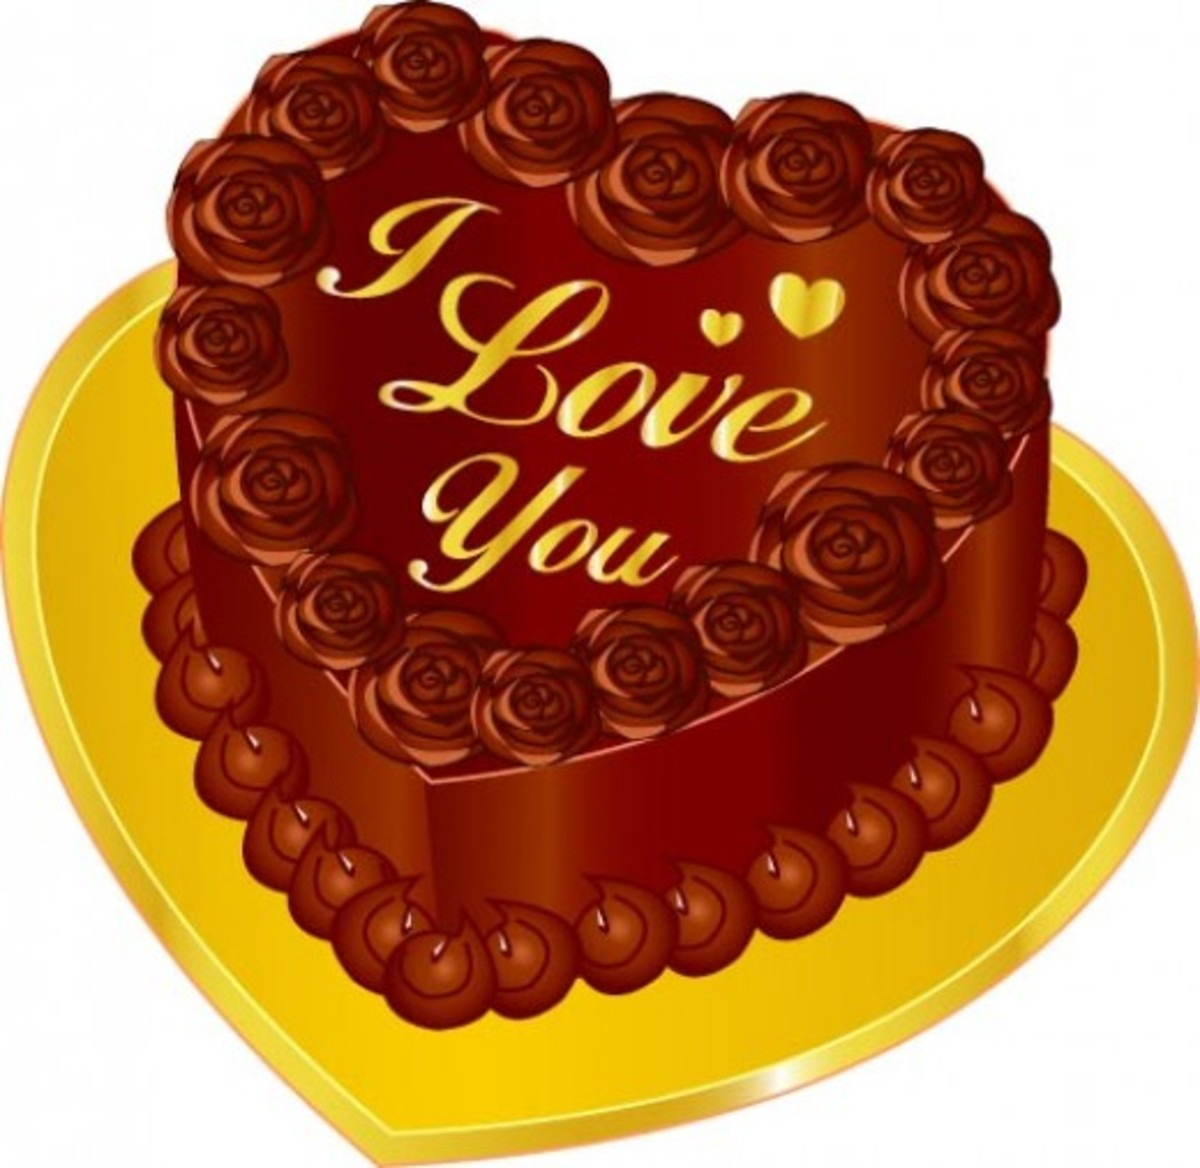 I Love You Heart-Shaped Valentine Chocolate Cake